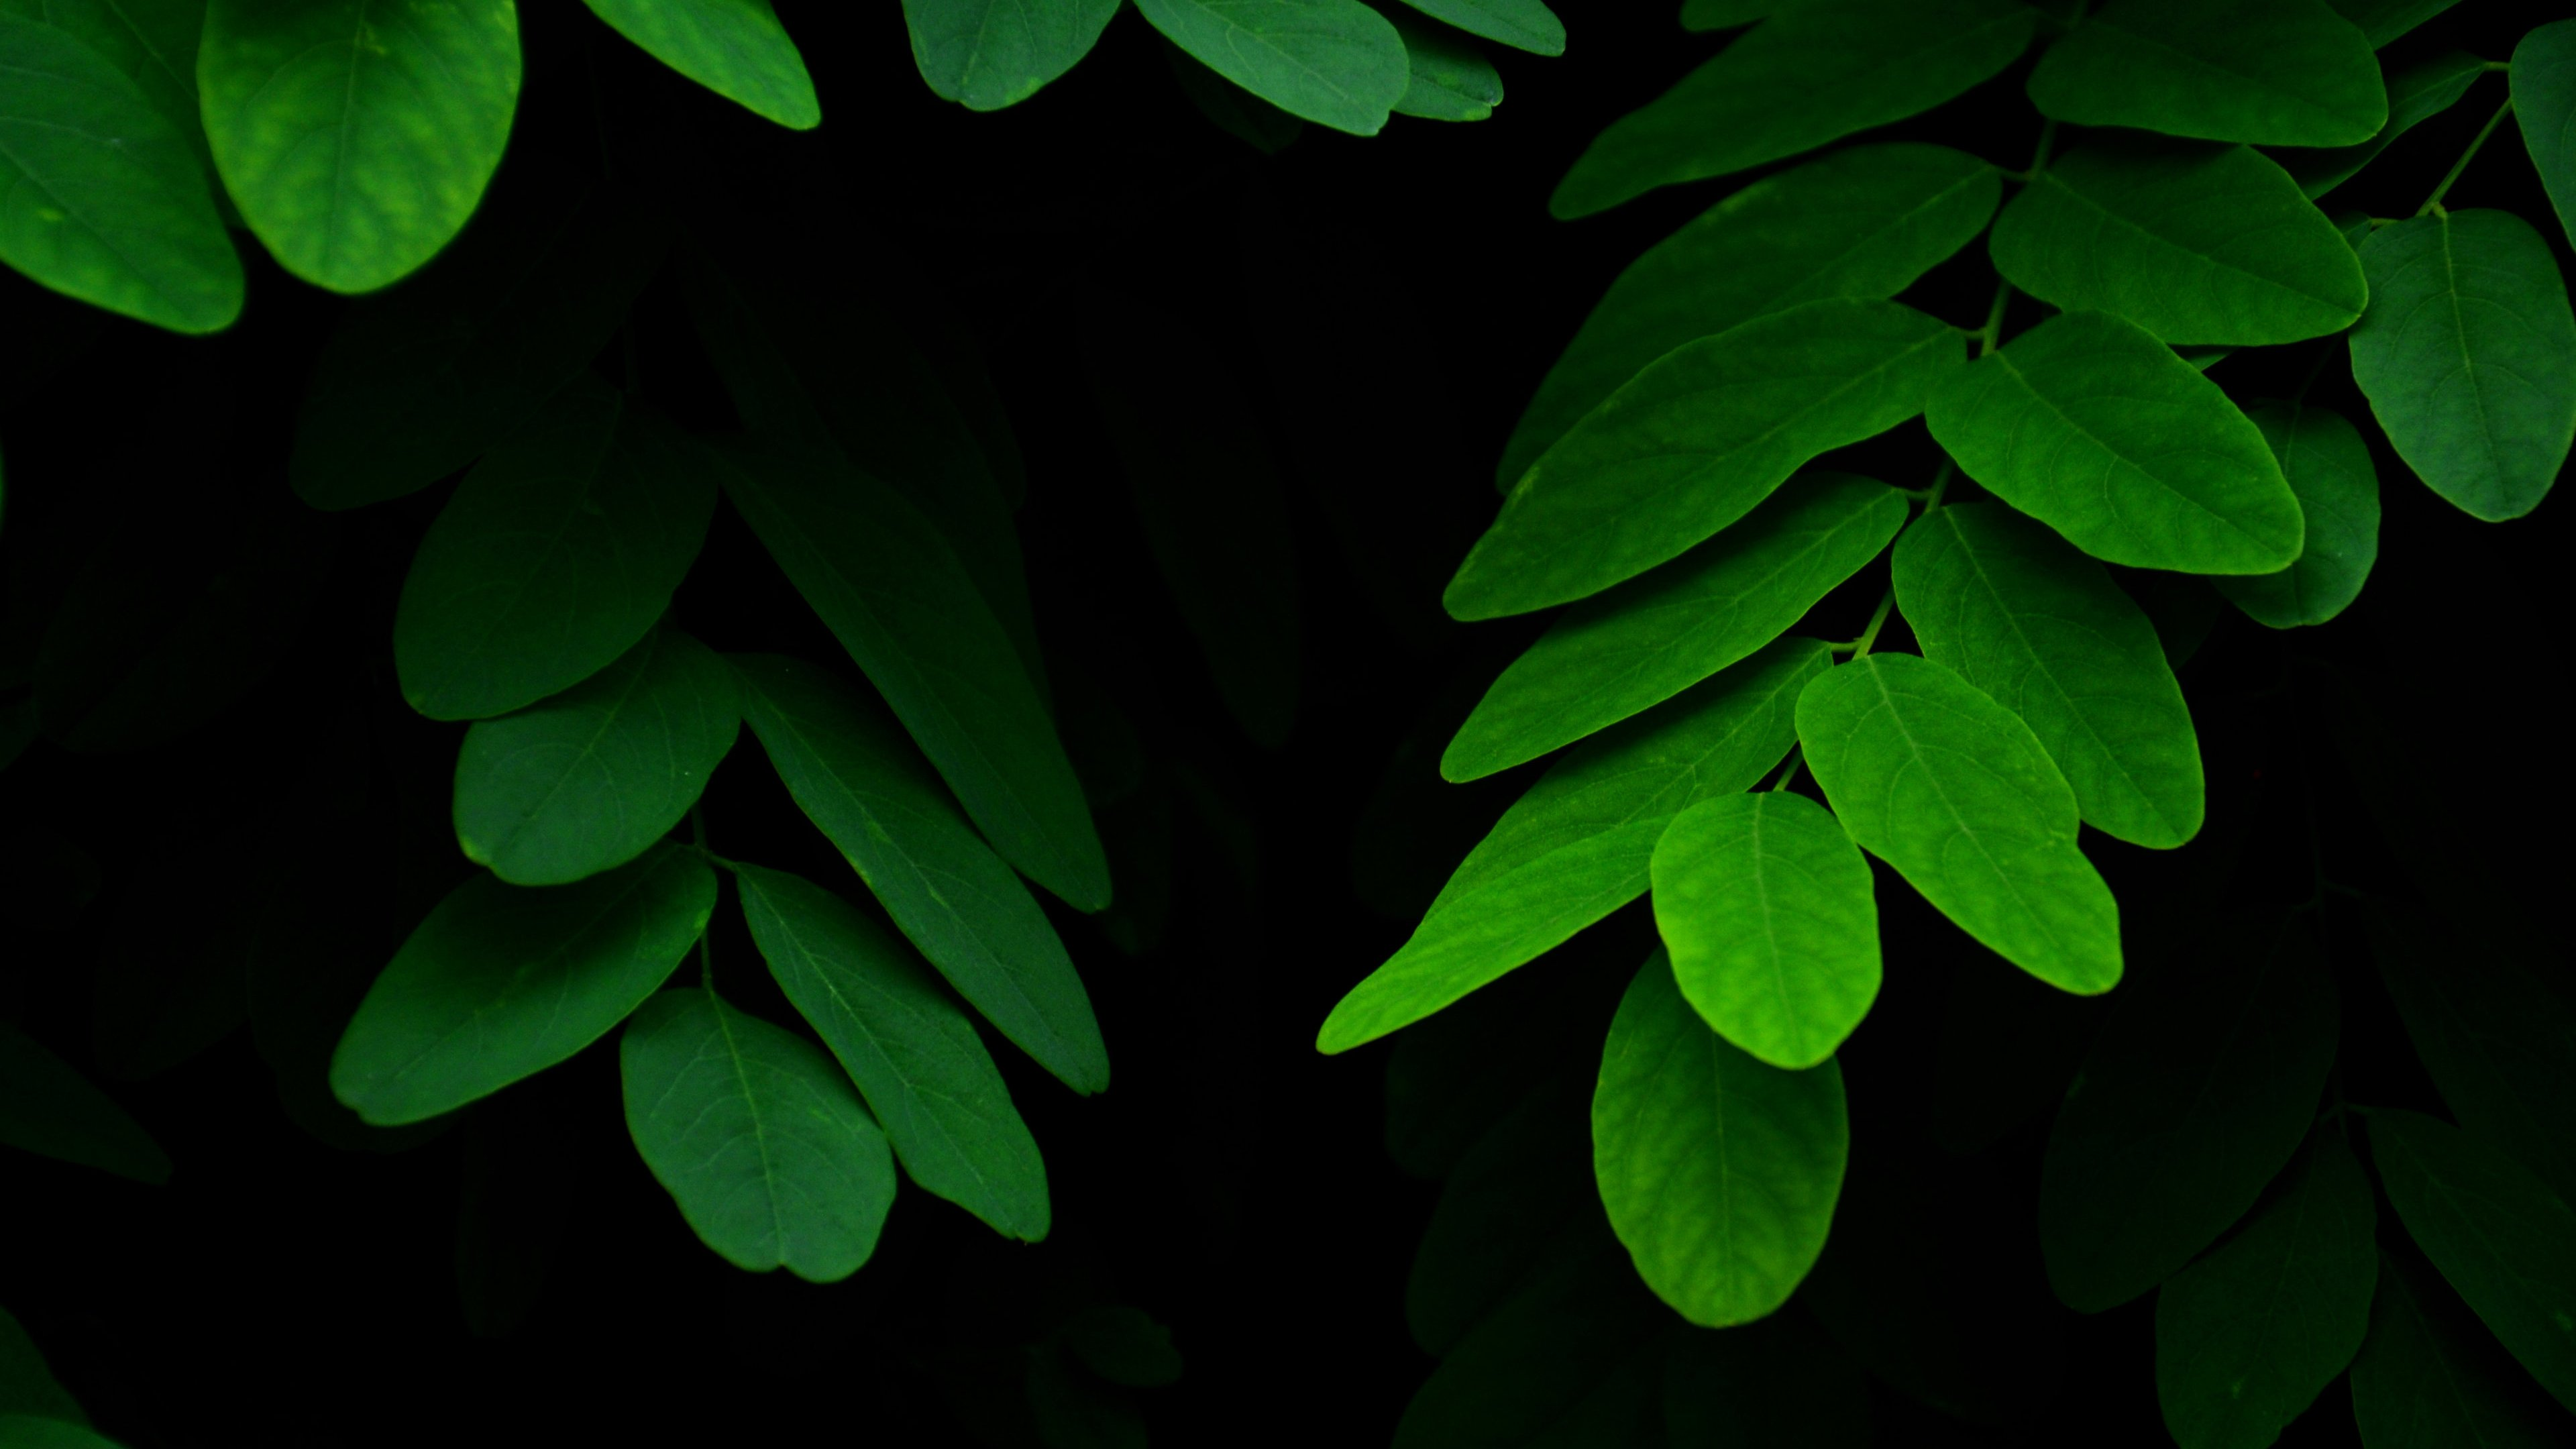 Leaves On Black Background